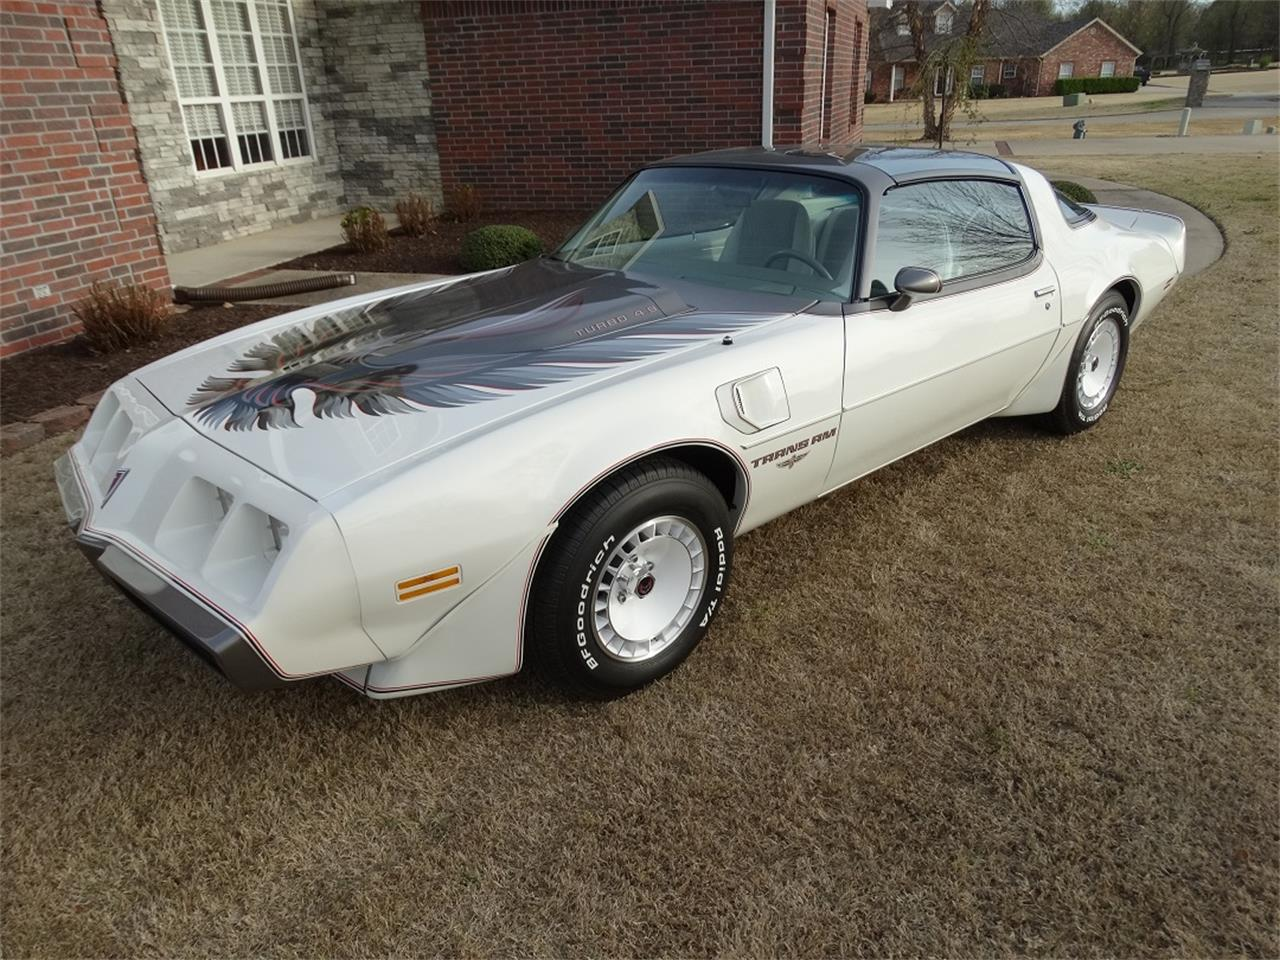 Large Picture of 1980 Firebird Trans Am located in Springdale Arkansas - $32,900.00 Offered by a Private Seller - N8ME